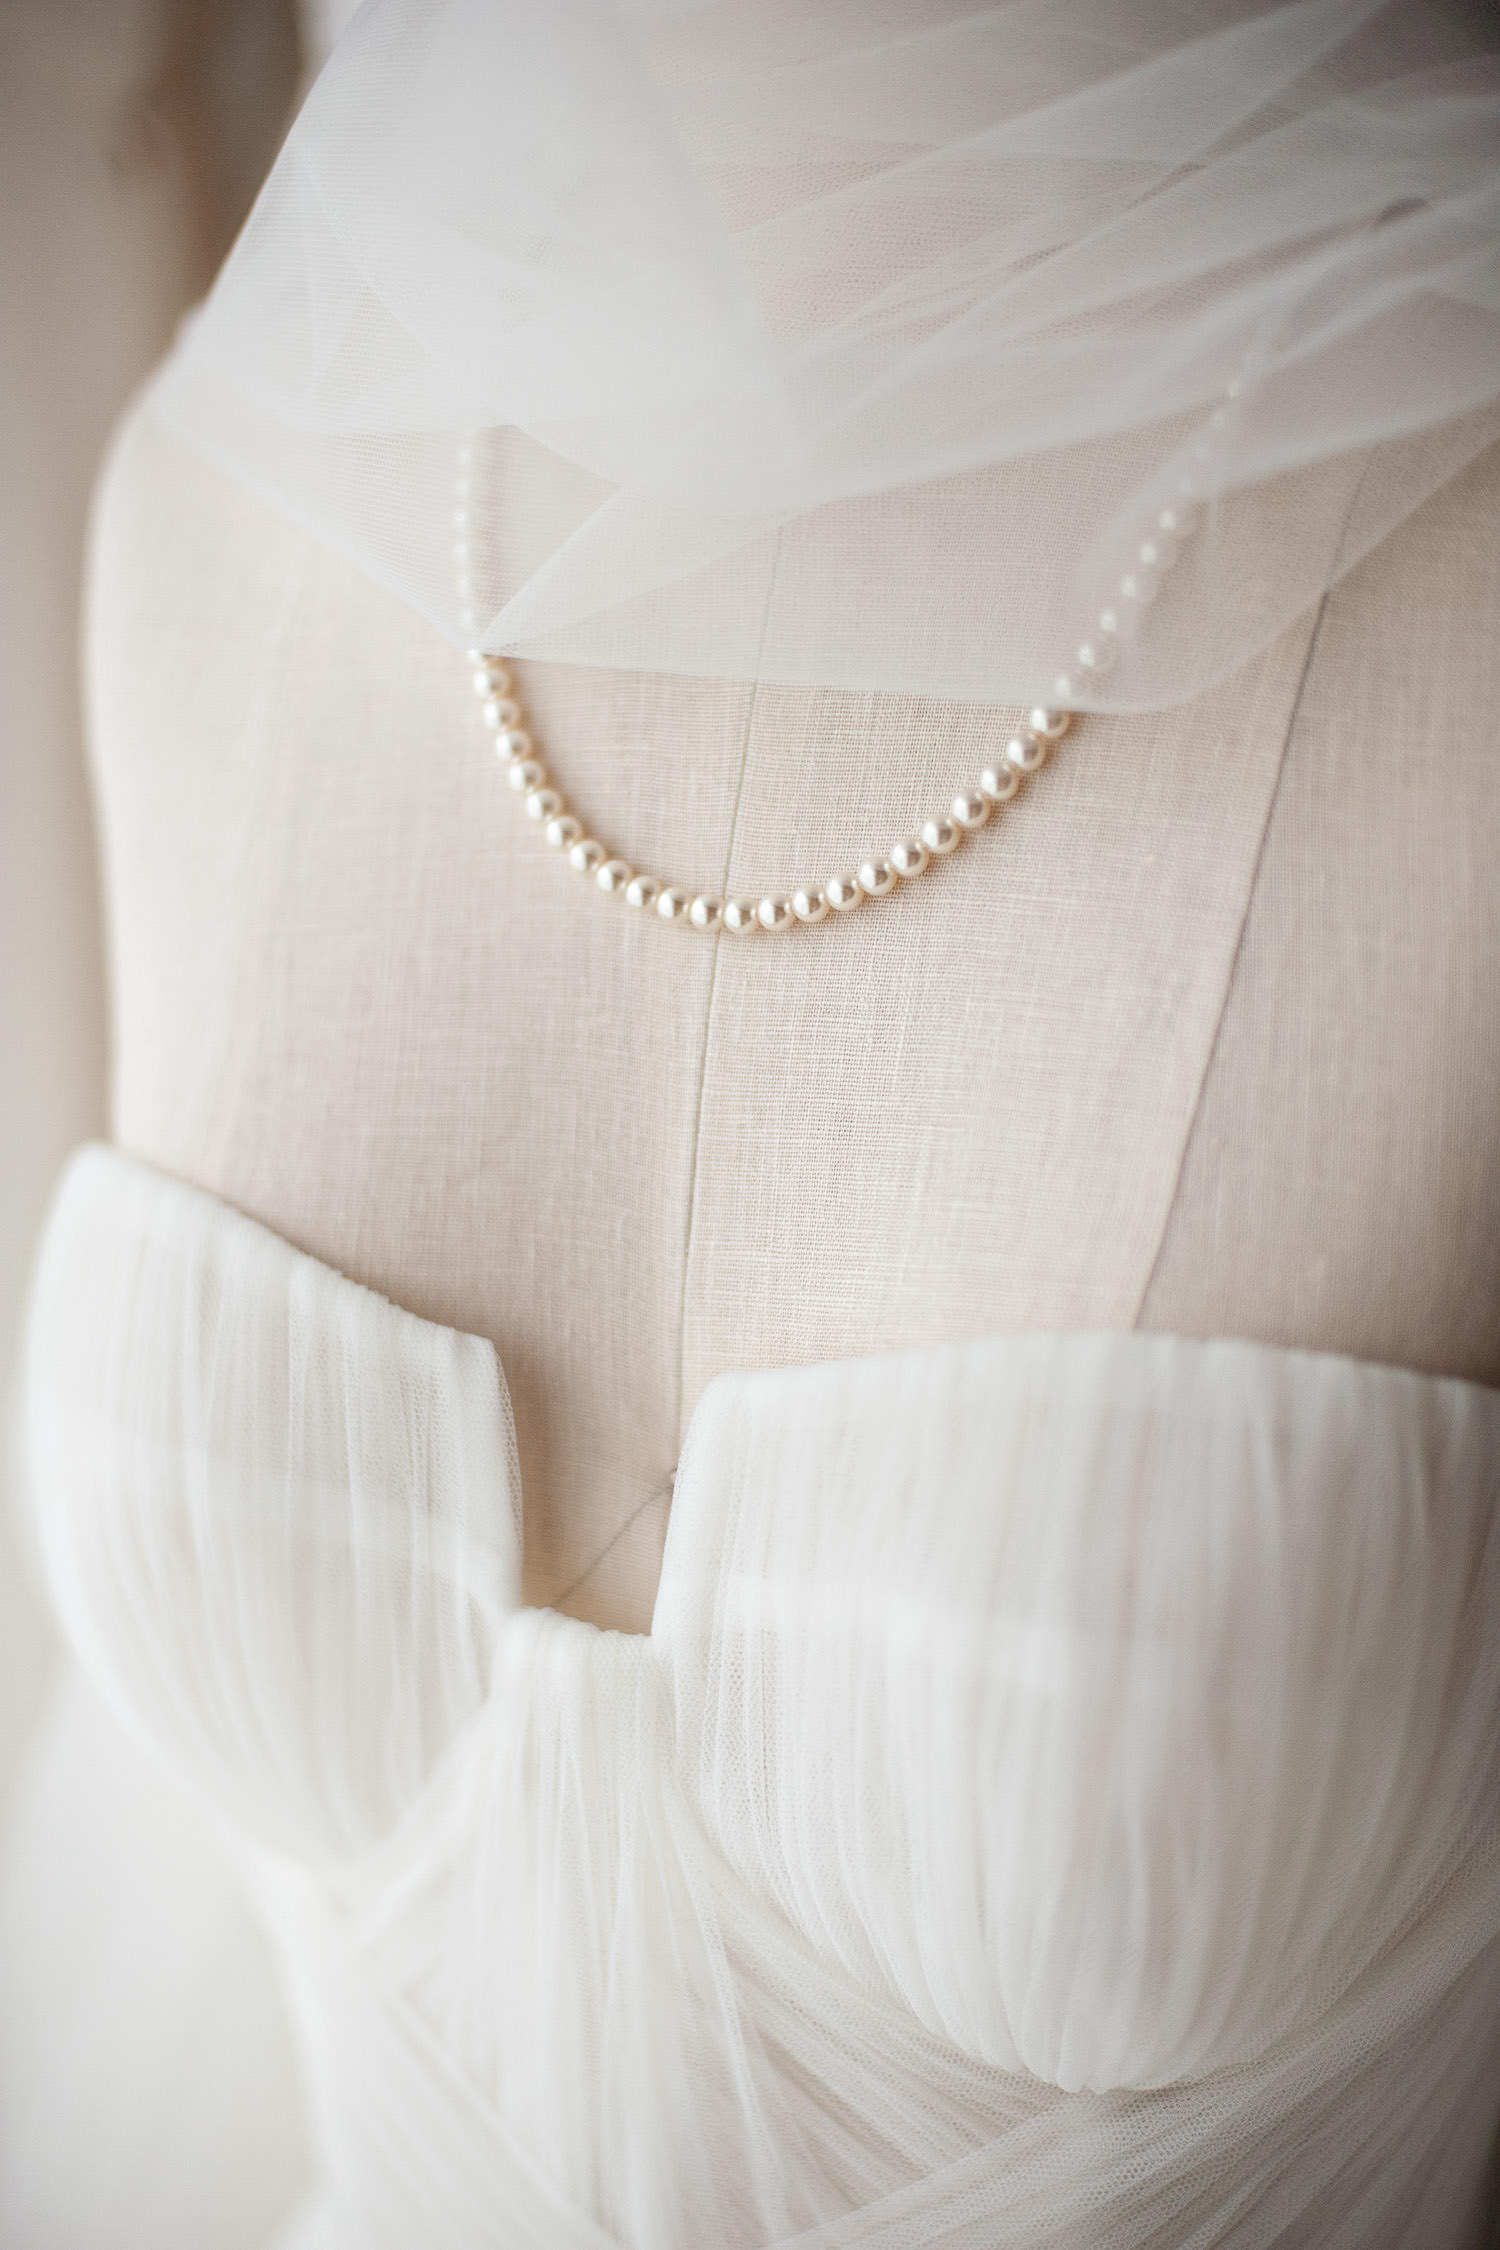 pearl bridal accessories from Joanna Bisley captured by Calgary wedding photographer Tara Whittaker